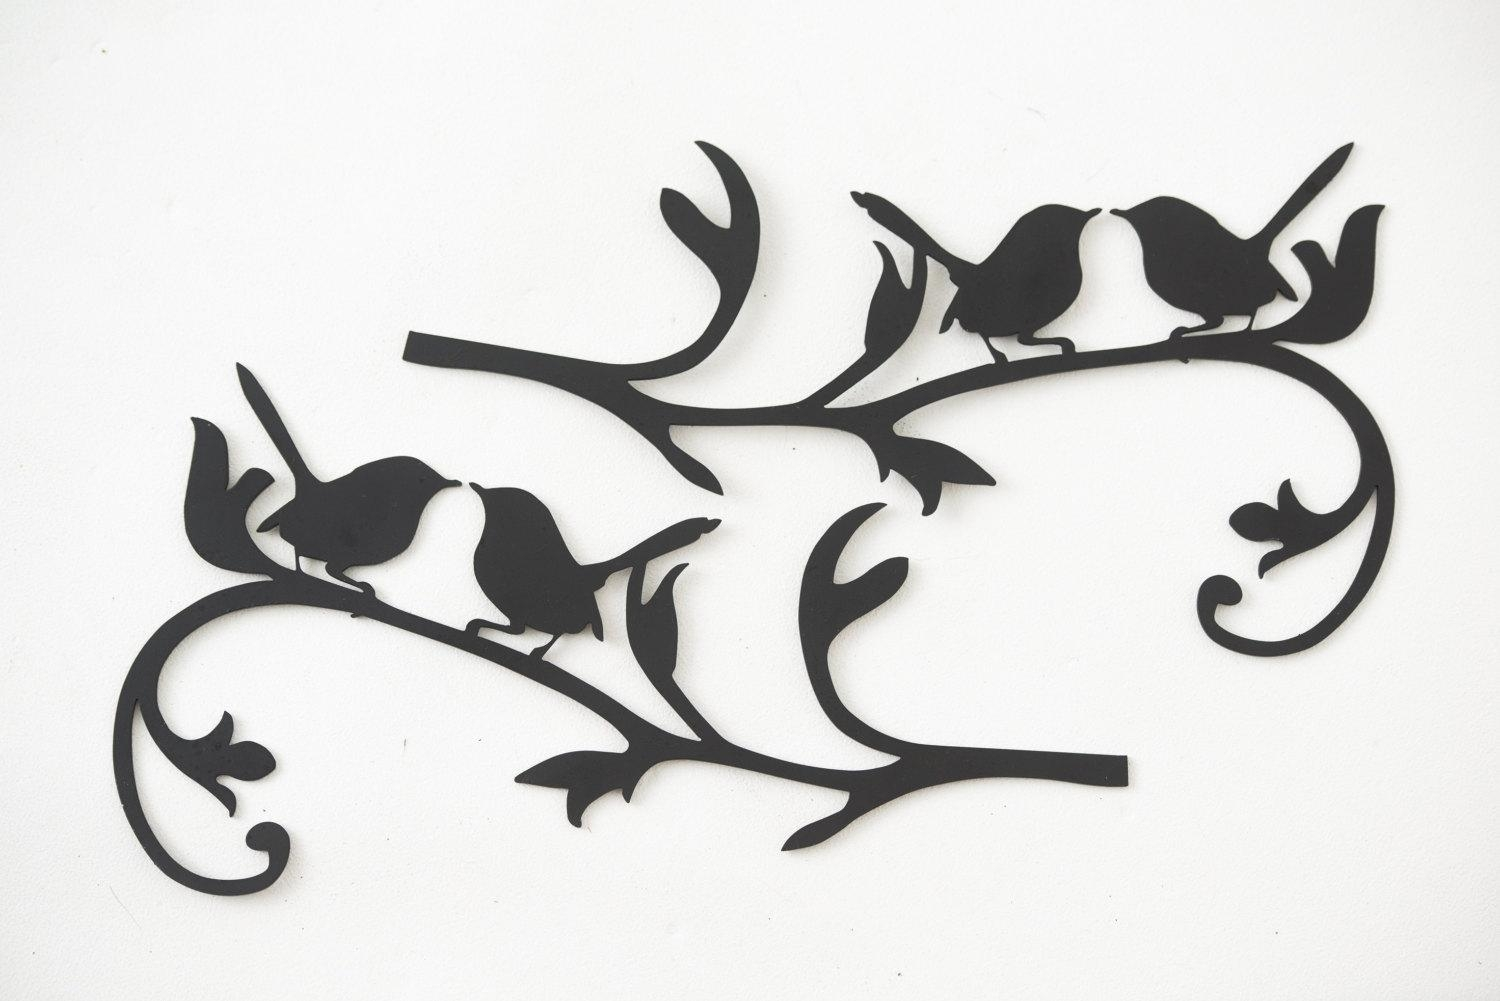 Wall Art Designs: Metal Bird Wall Art Flying Birds Wall Sculptures With Regard To Flock Of Birds Wall Art (View 11 of 20)